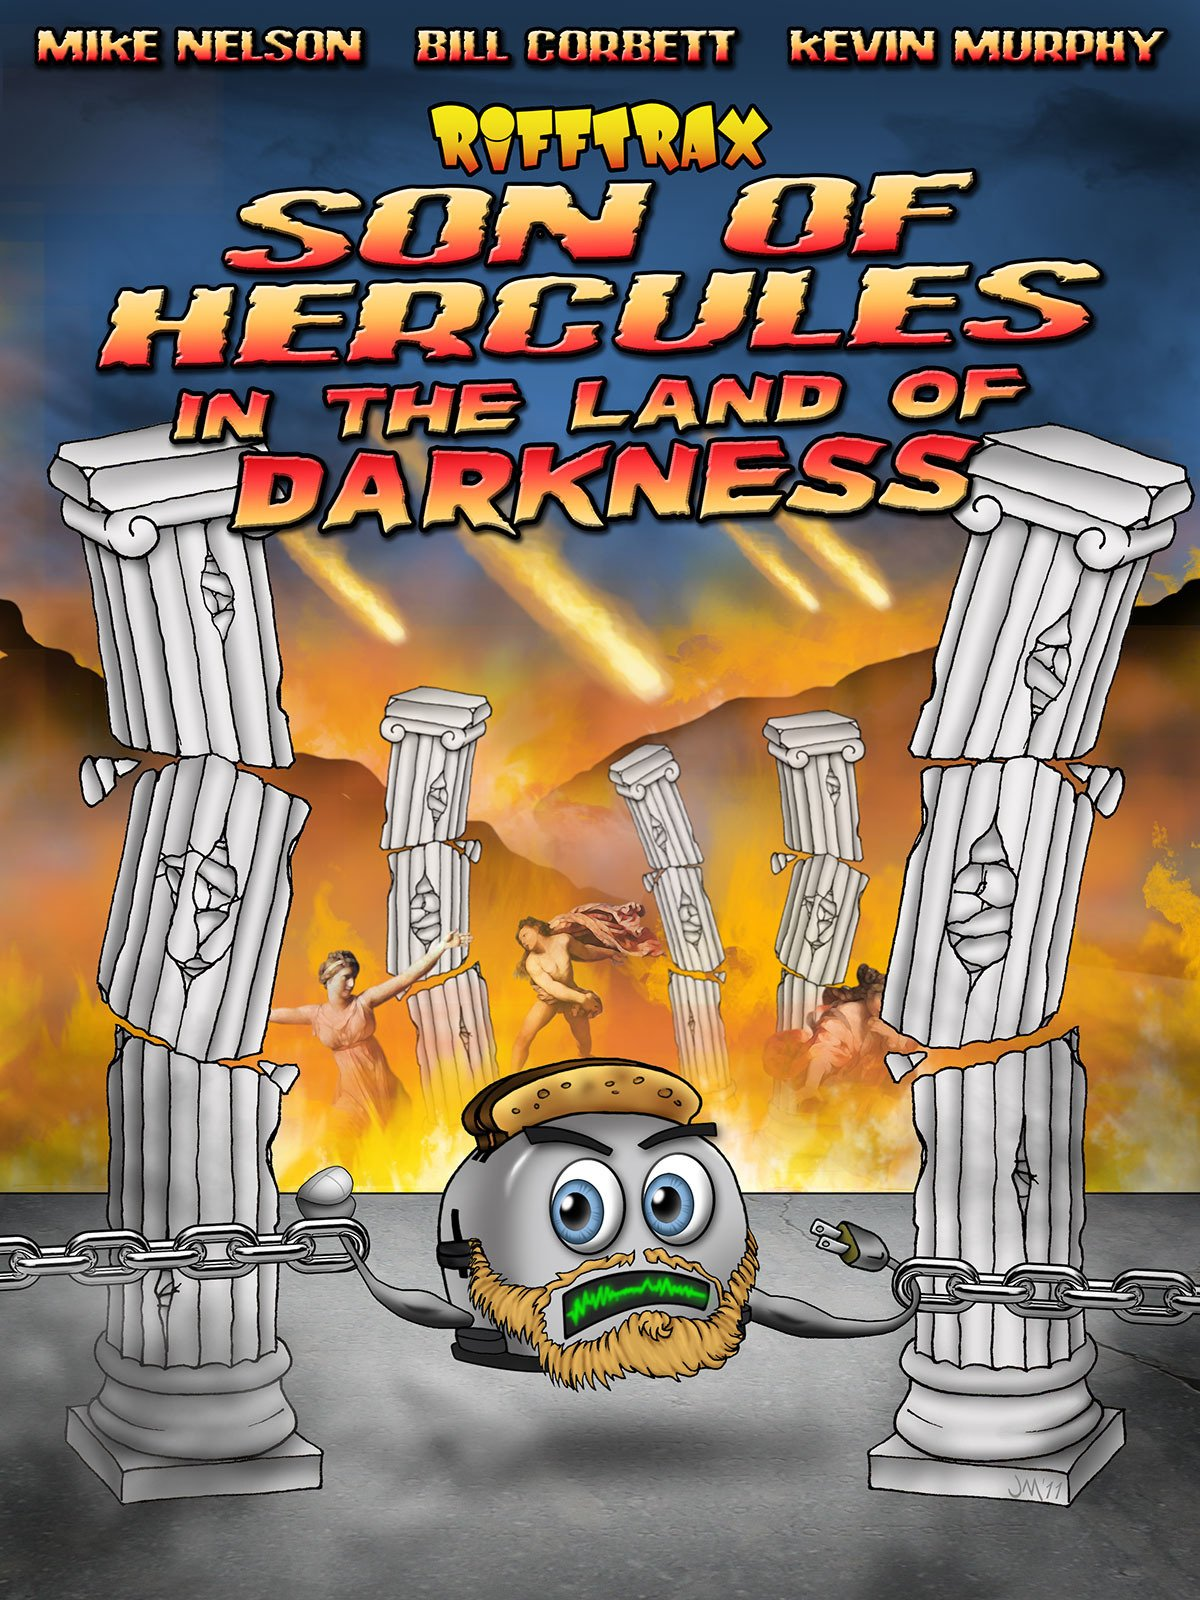 RiffTrax: Sons of Hercules